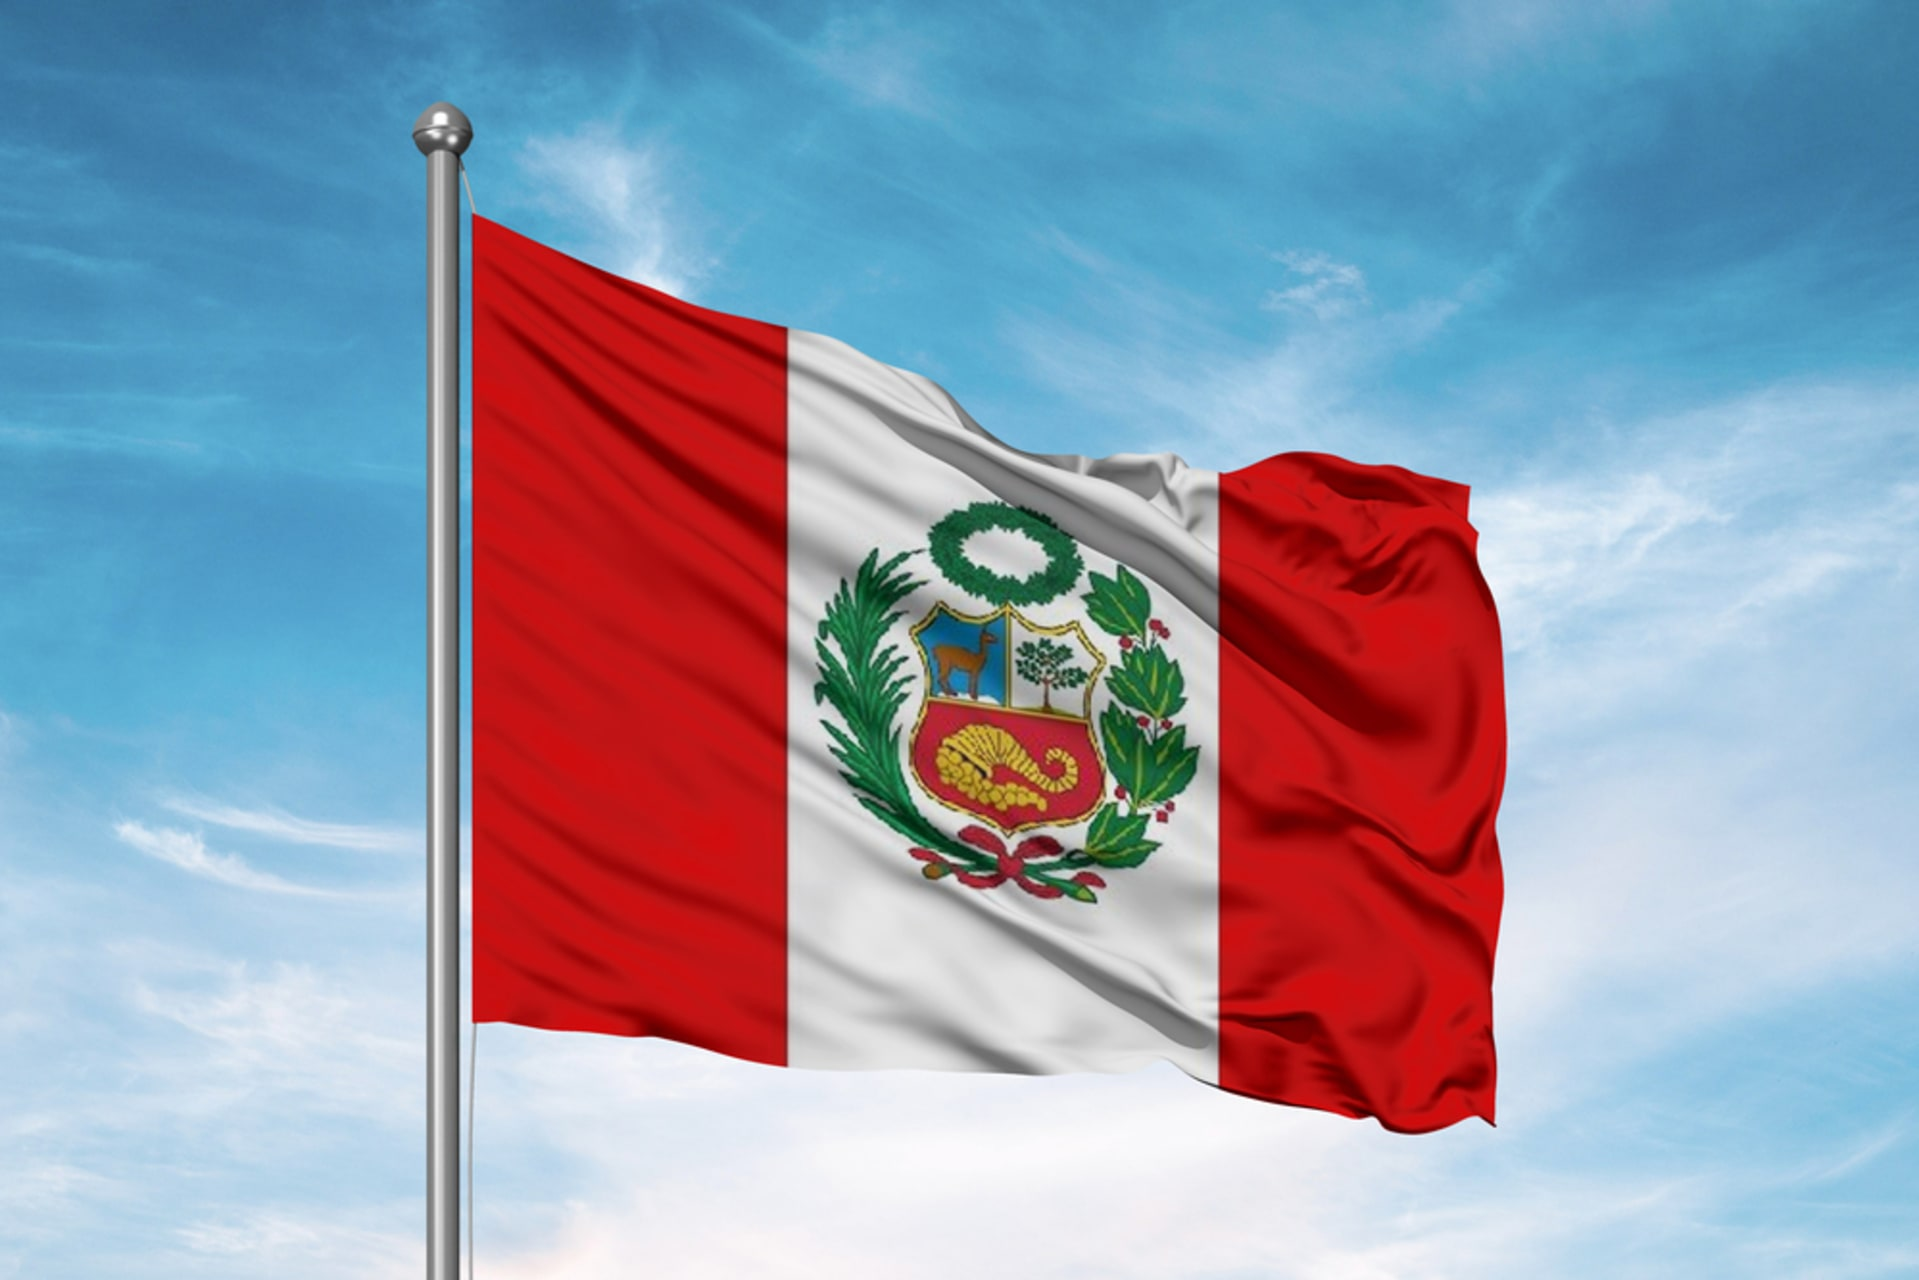 Cusco - Celebrating the Bicentennial of the Independence of Peru